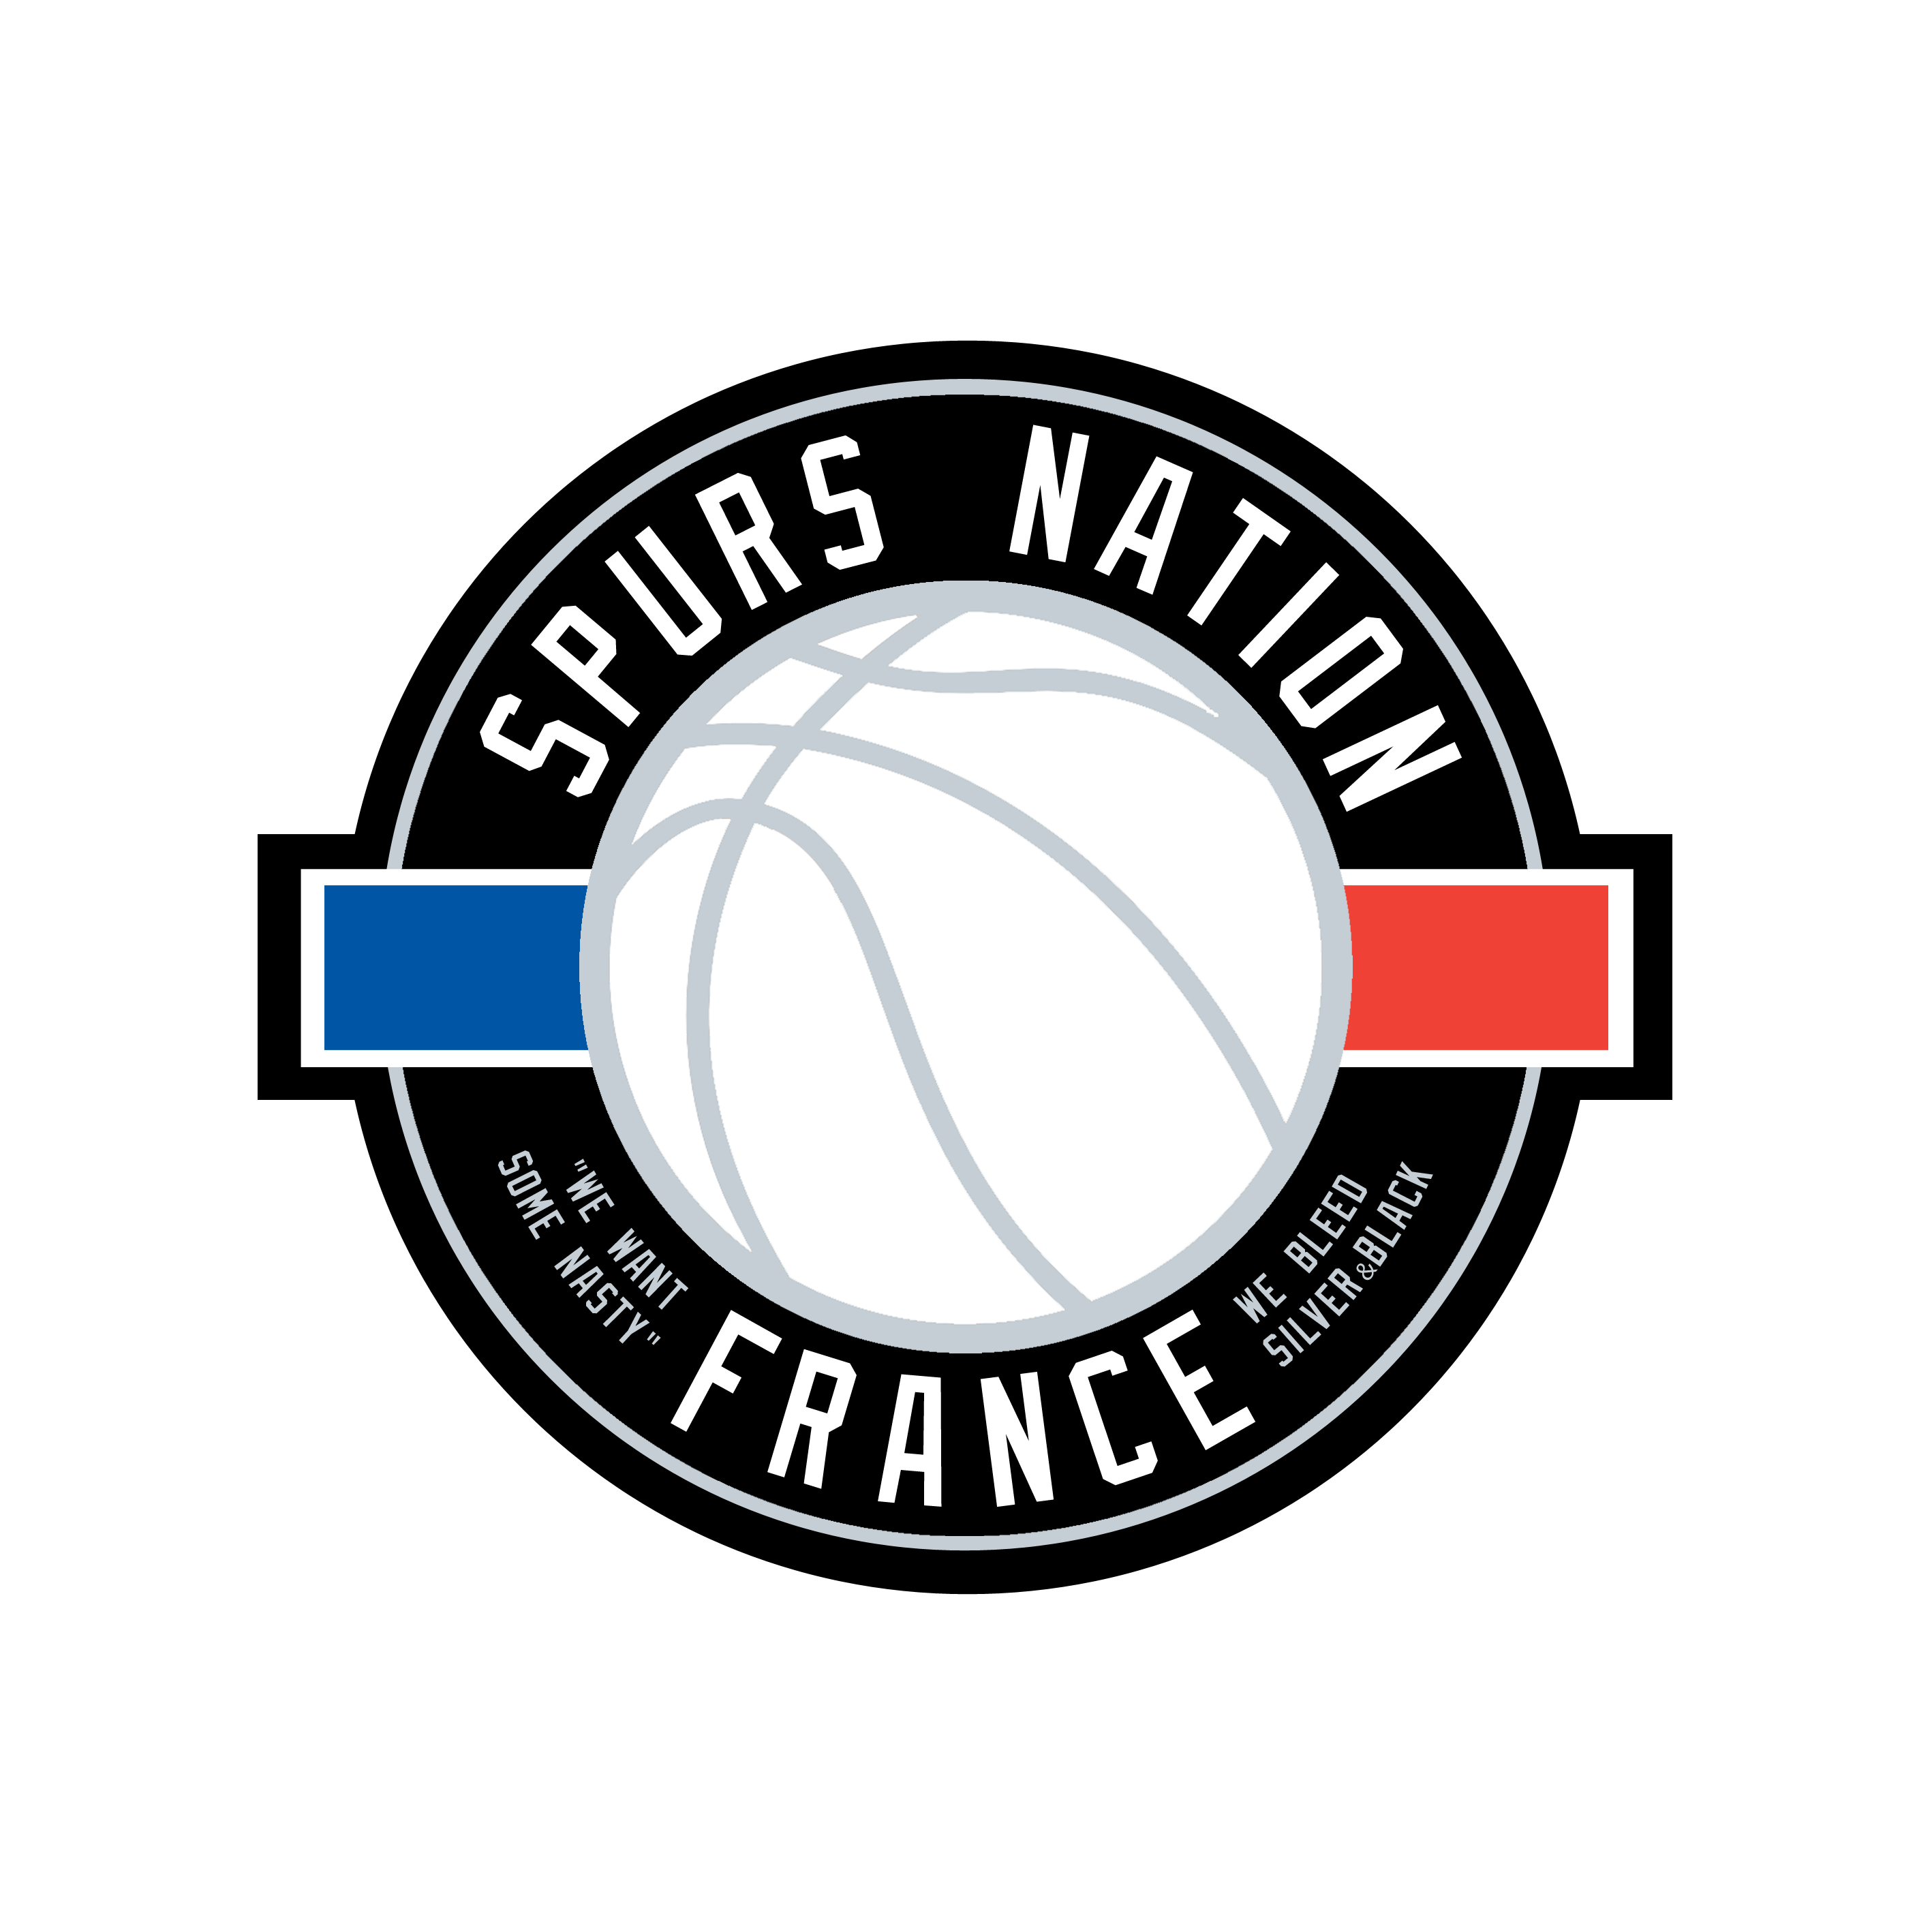 Spurs Nation France